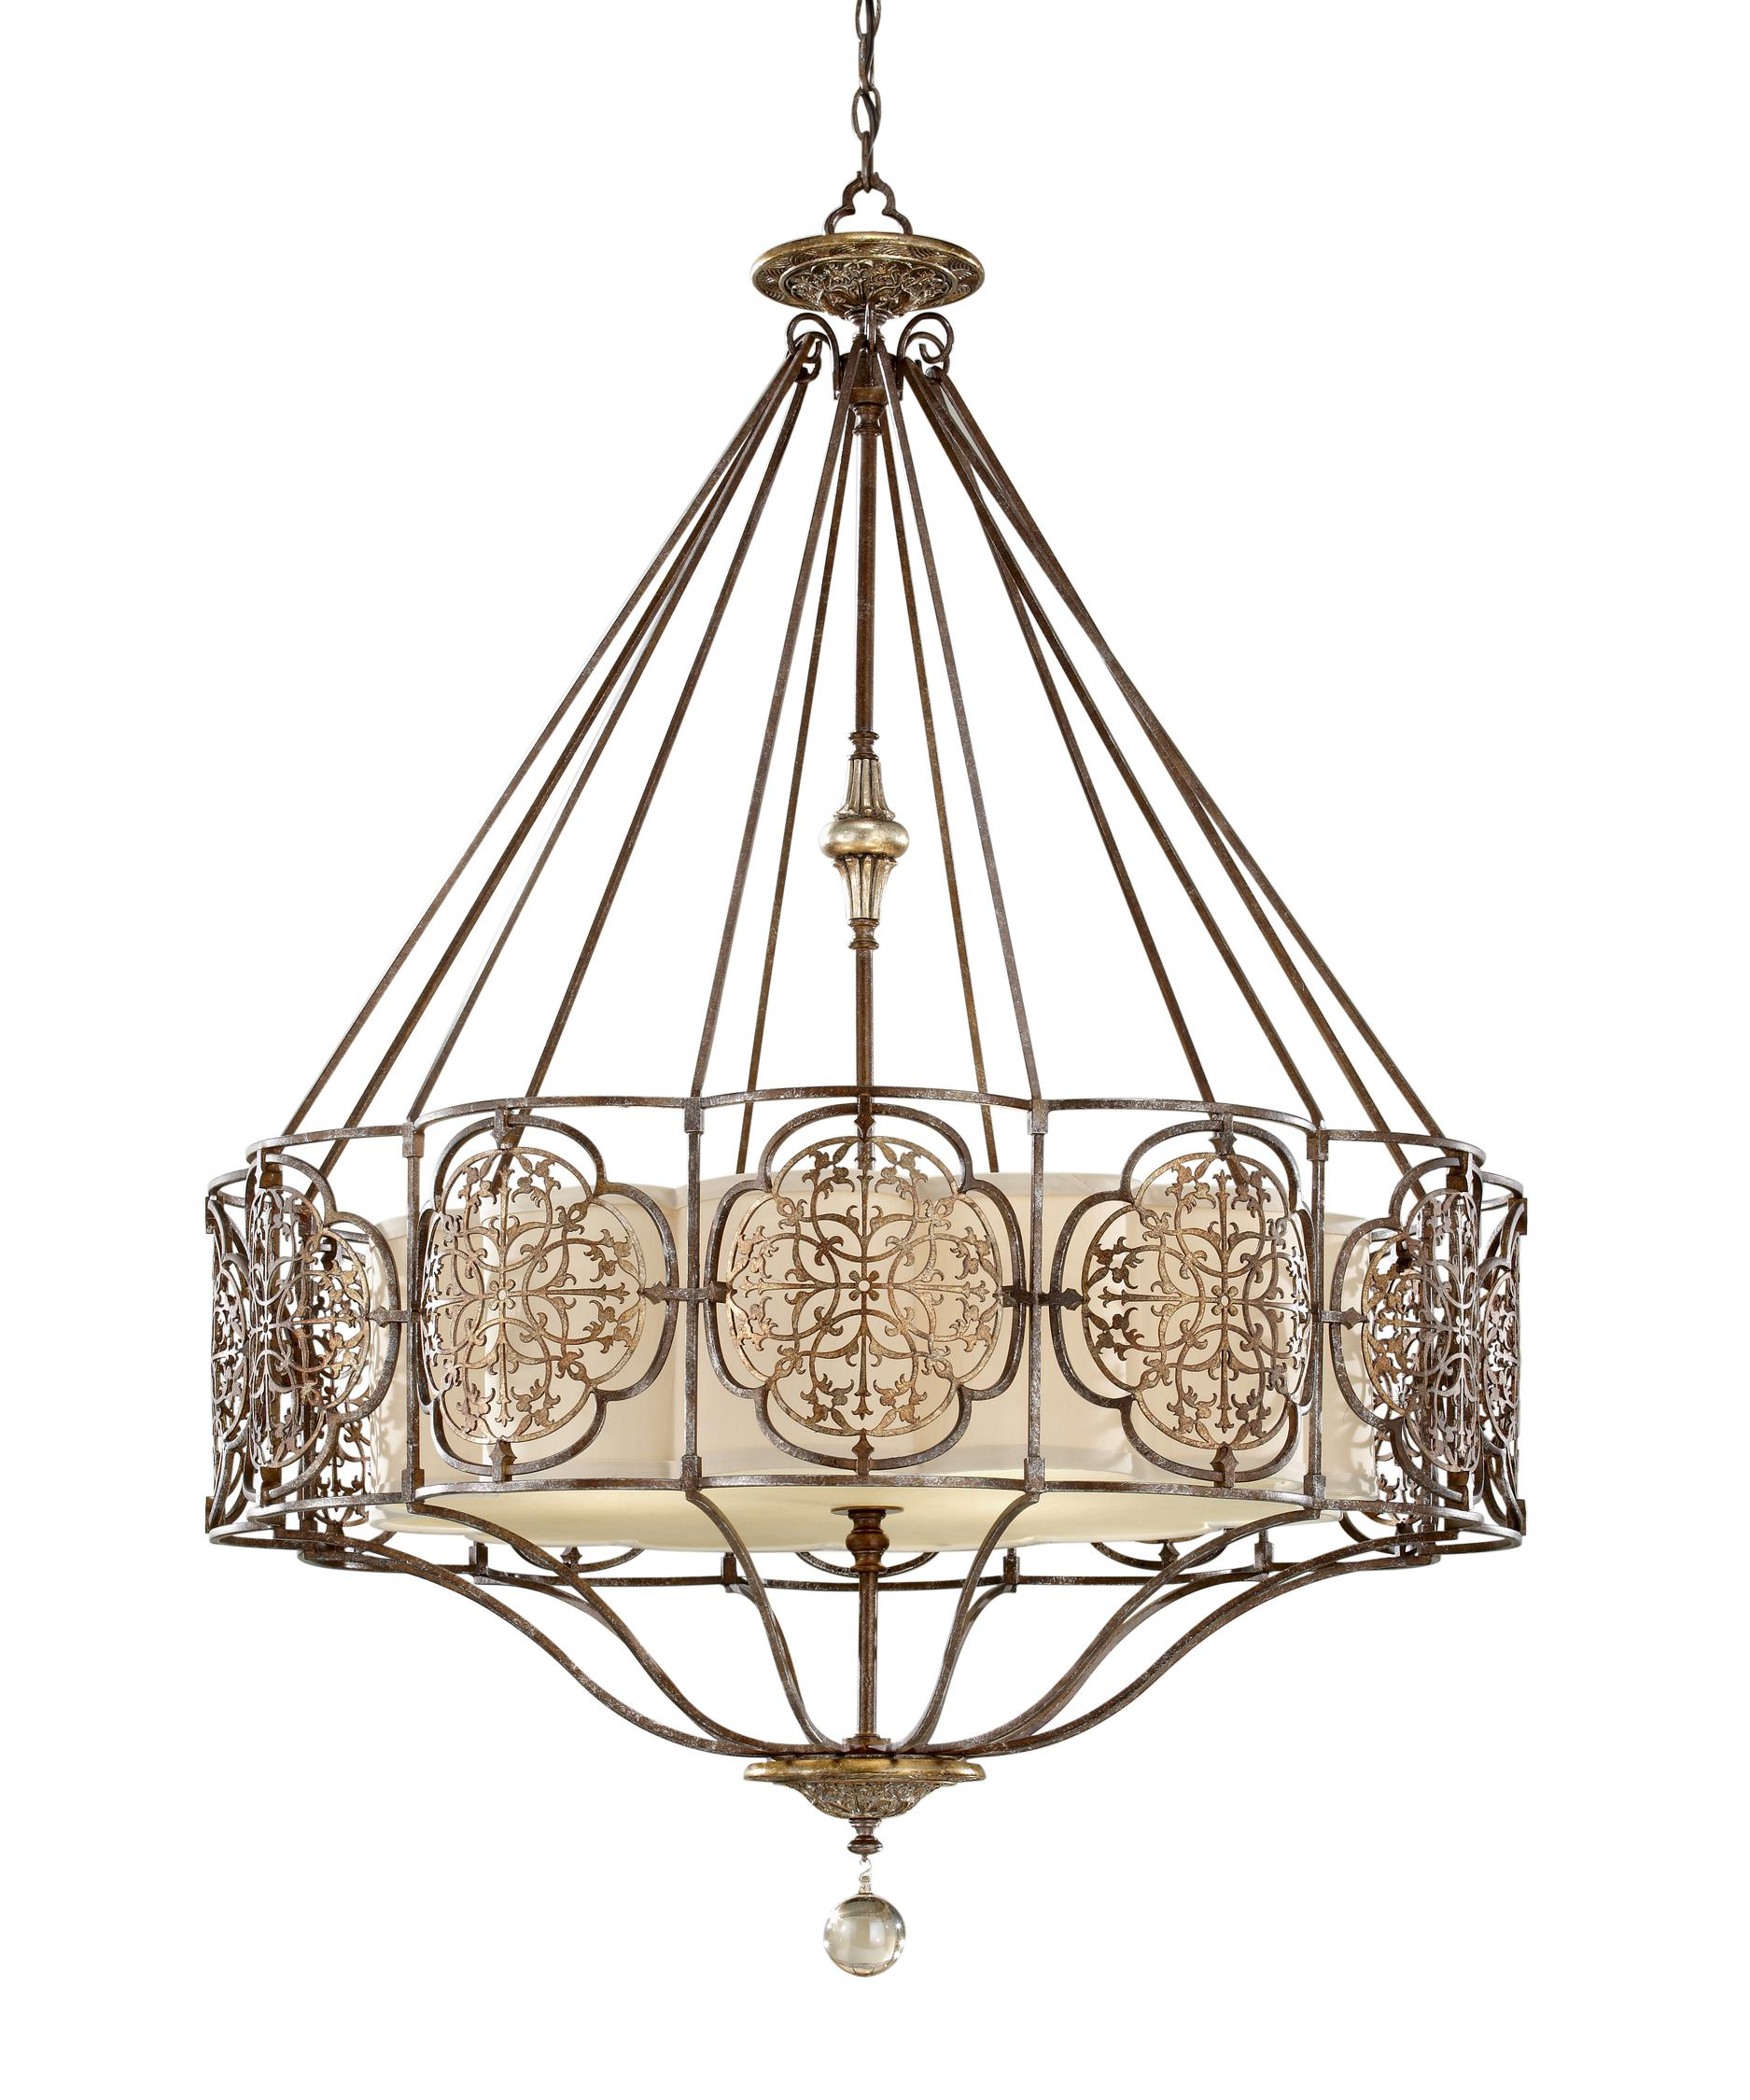 Murray Feiss Marcella 32 Inch Wide 4 Light Chandelier – Murray Feiss Chandeliers